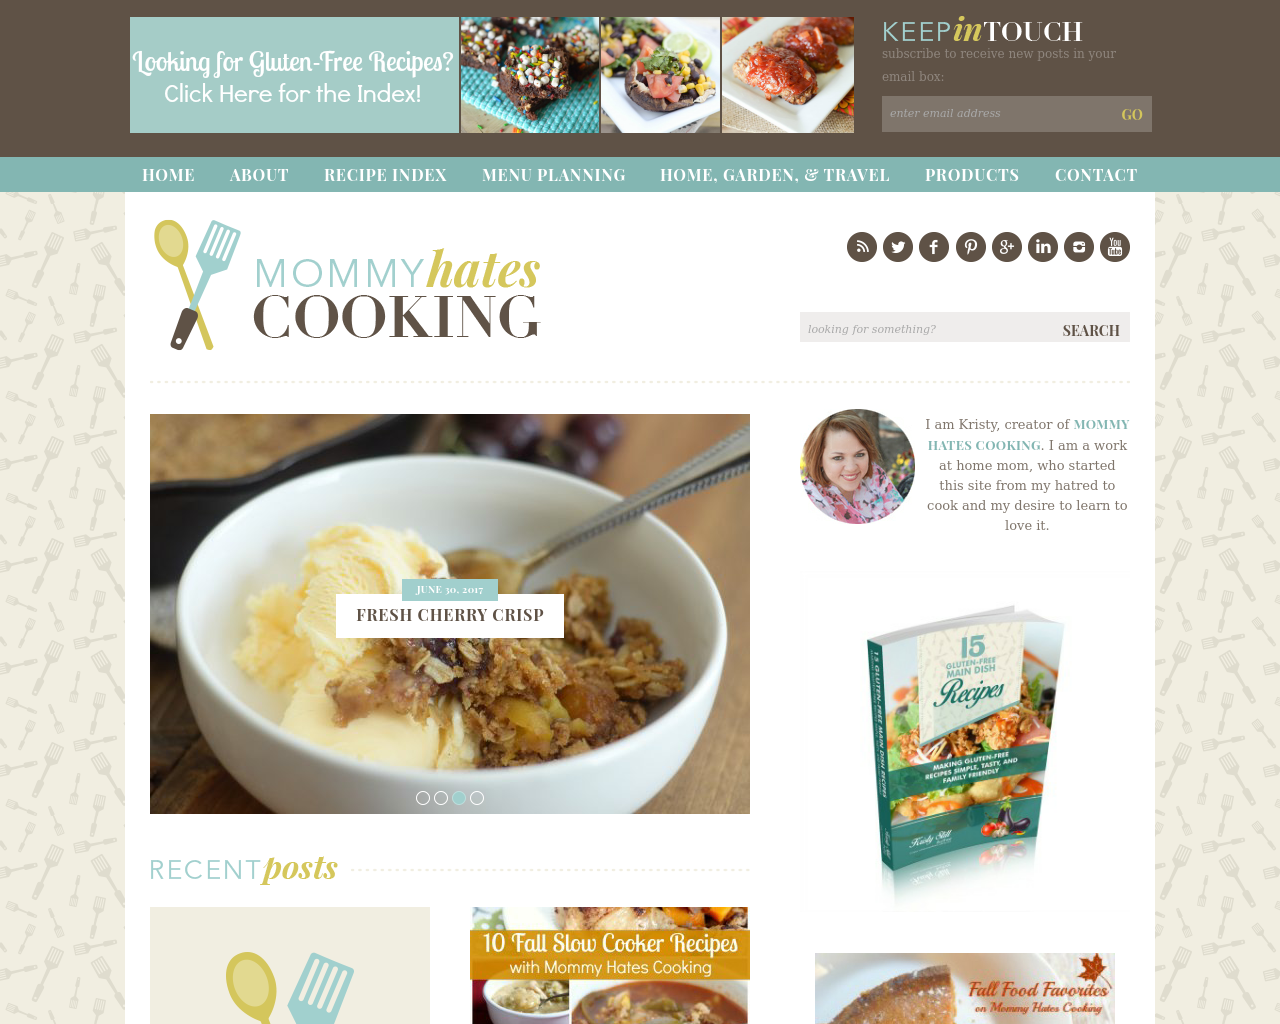 Mommy-Hates-Cooking-Advertising-Reviews-Pricing